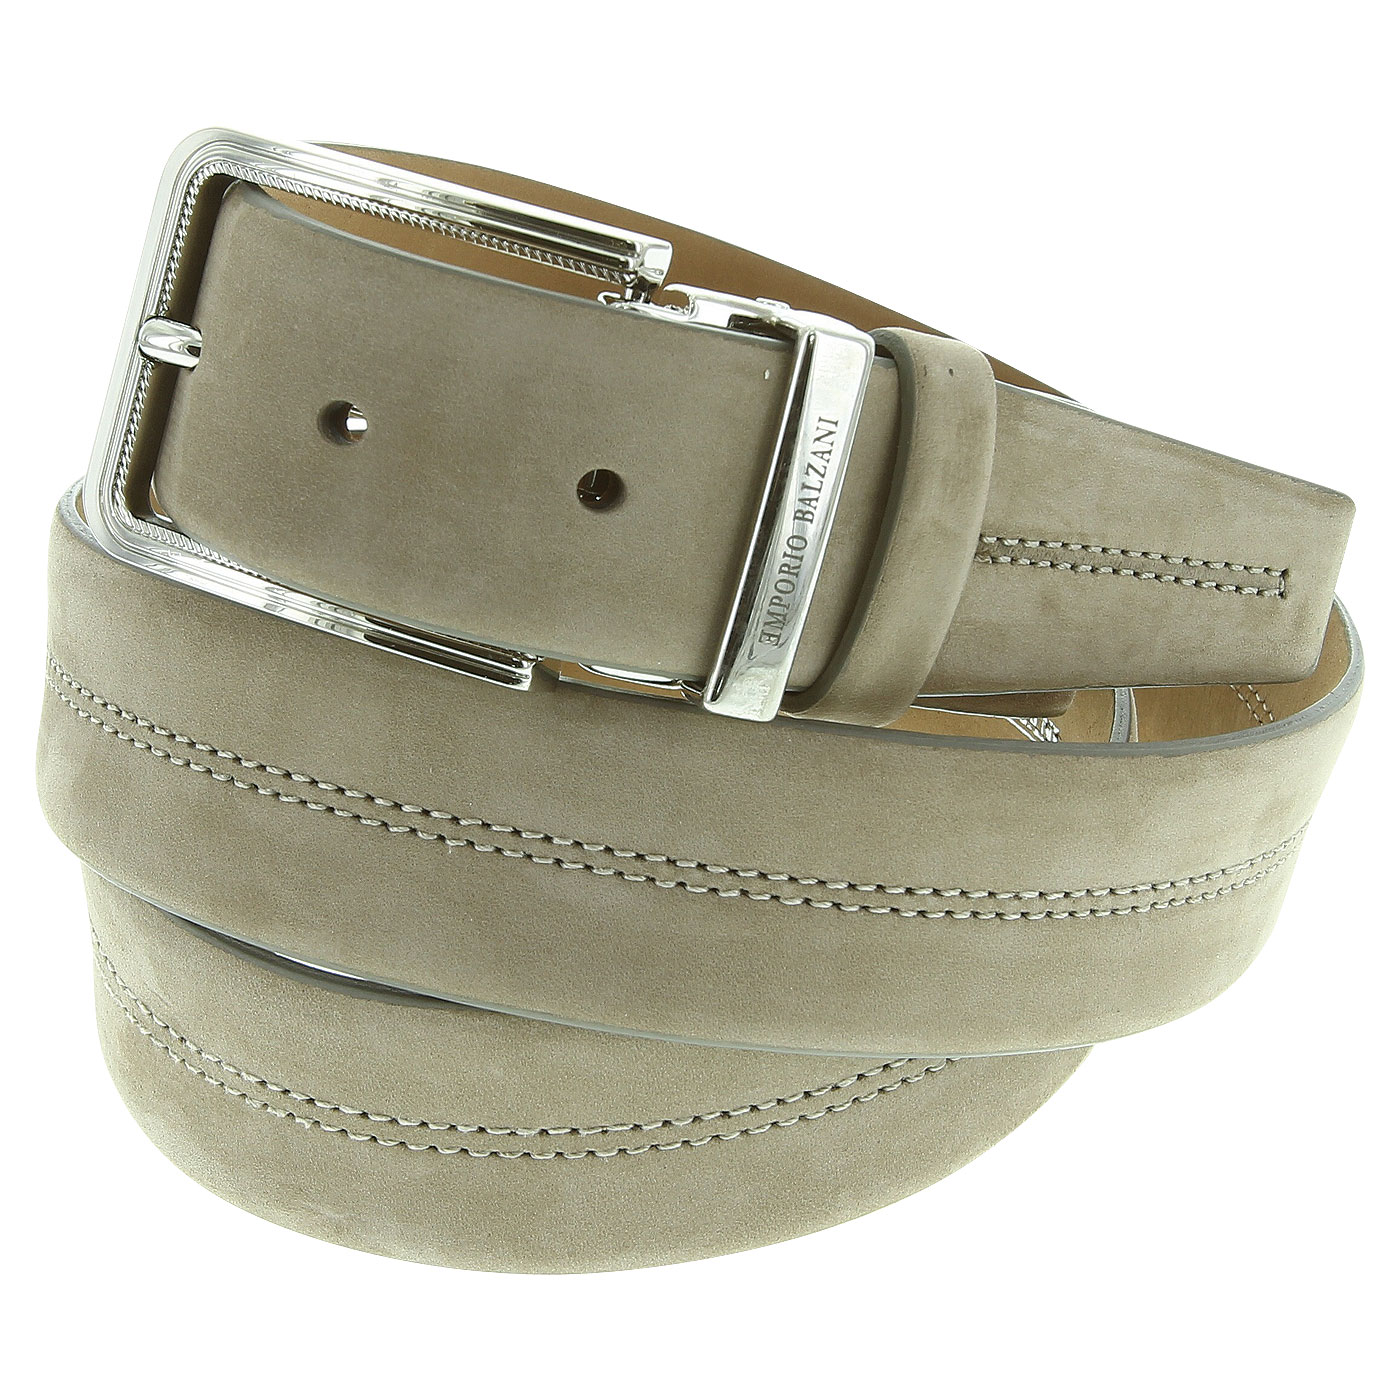 A large choice of leather belts on webmenshirts.com